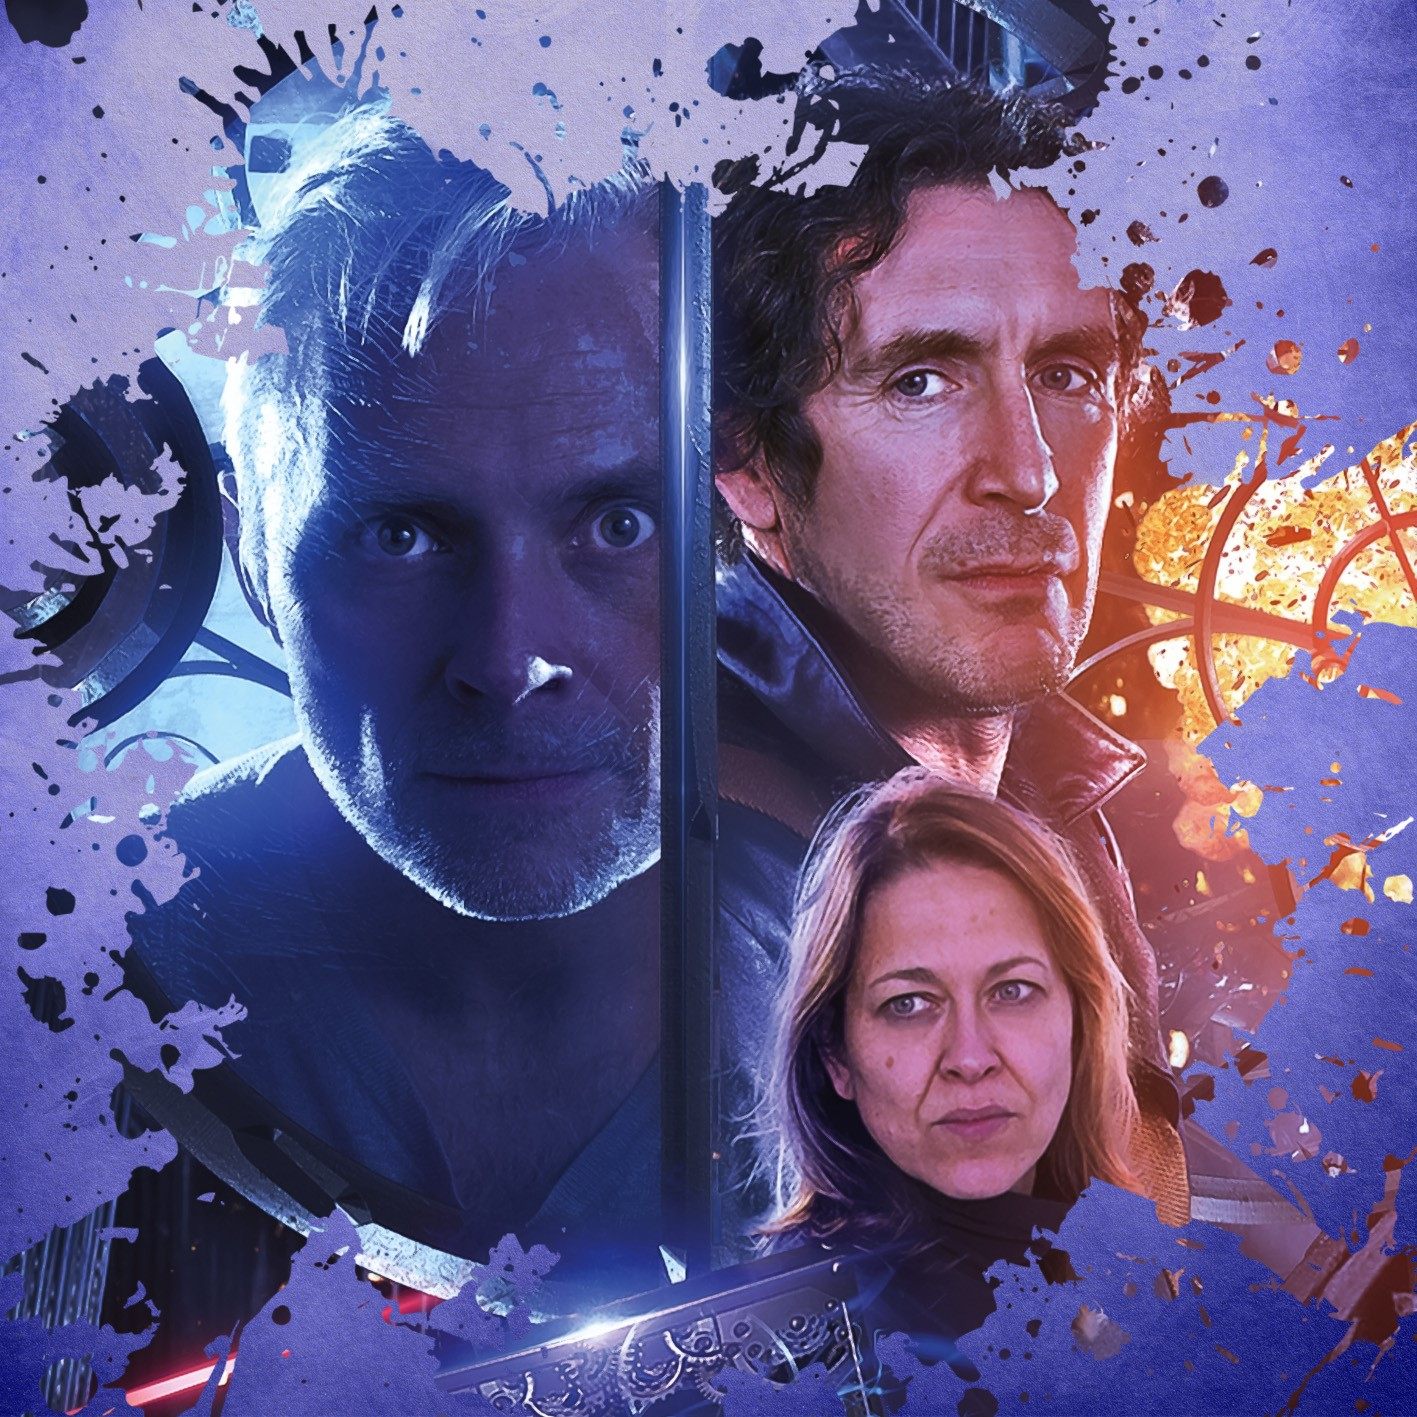 Doom Coalition: The Eleven. Cover by Tom Webster (c) Big Finish Productions Doctor Who Eighth Doctor Paul McGann Mark Bonnar Nicola Walker